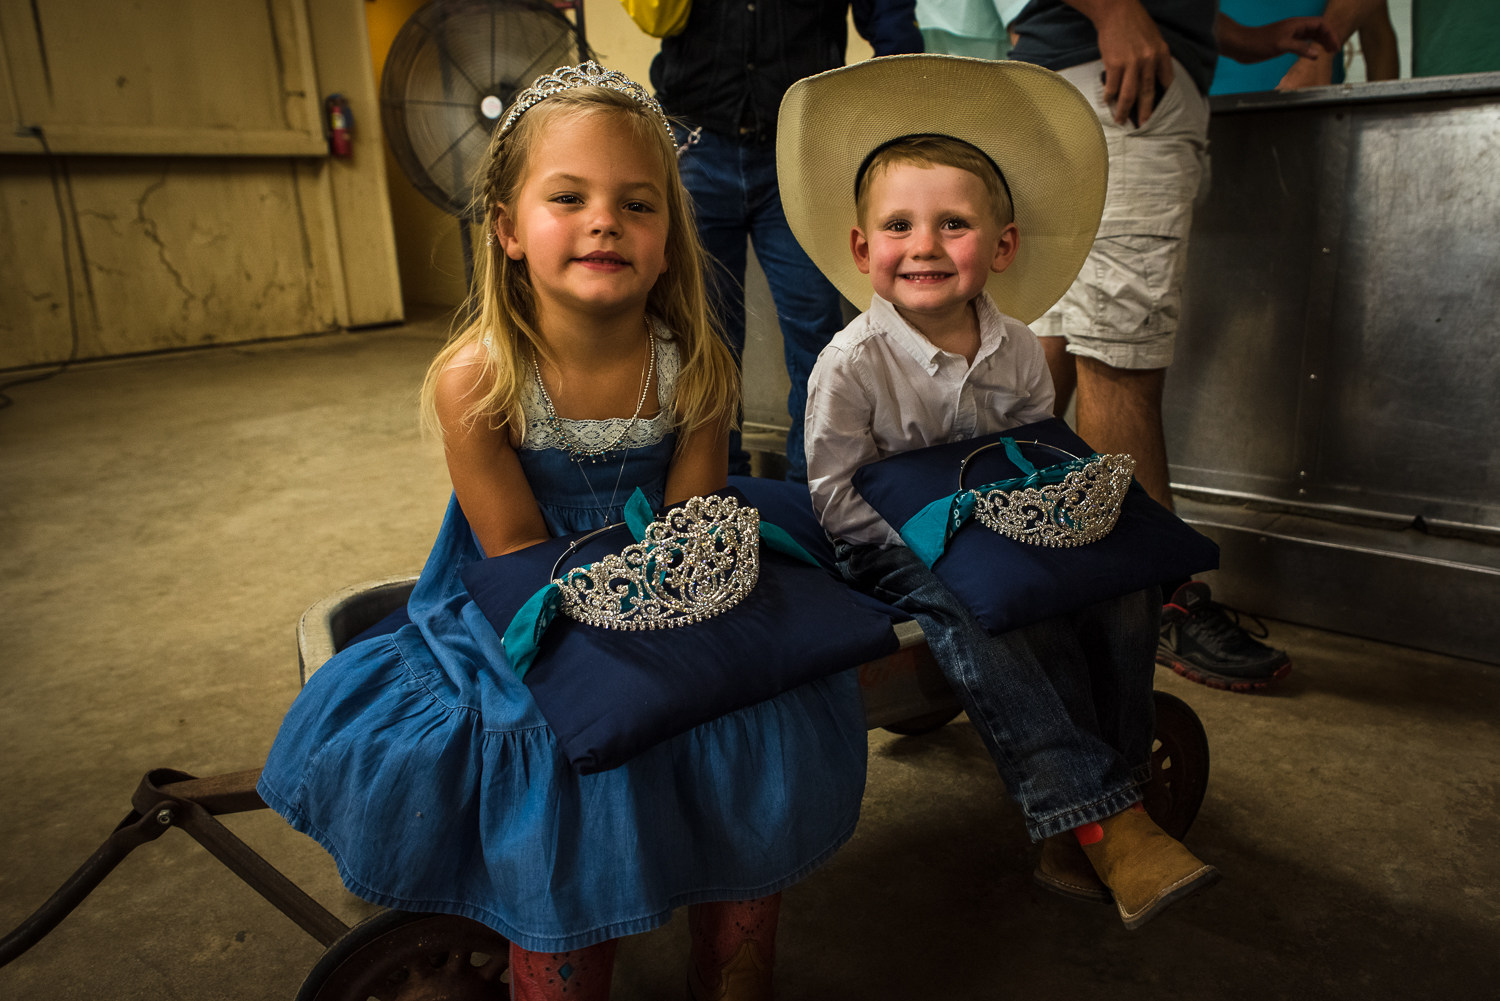 © Ayash Basu. Young kids wait side-stage for the soon to be crowned Queen of Johnson City. The entire local community, including businesses, was out there to support the contestants and everyone who participated in any way, including these crown bearers. Johnson City 2017.